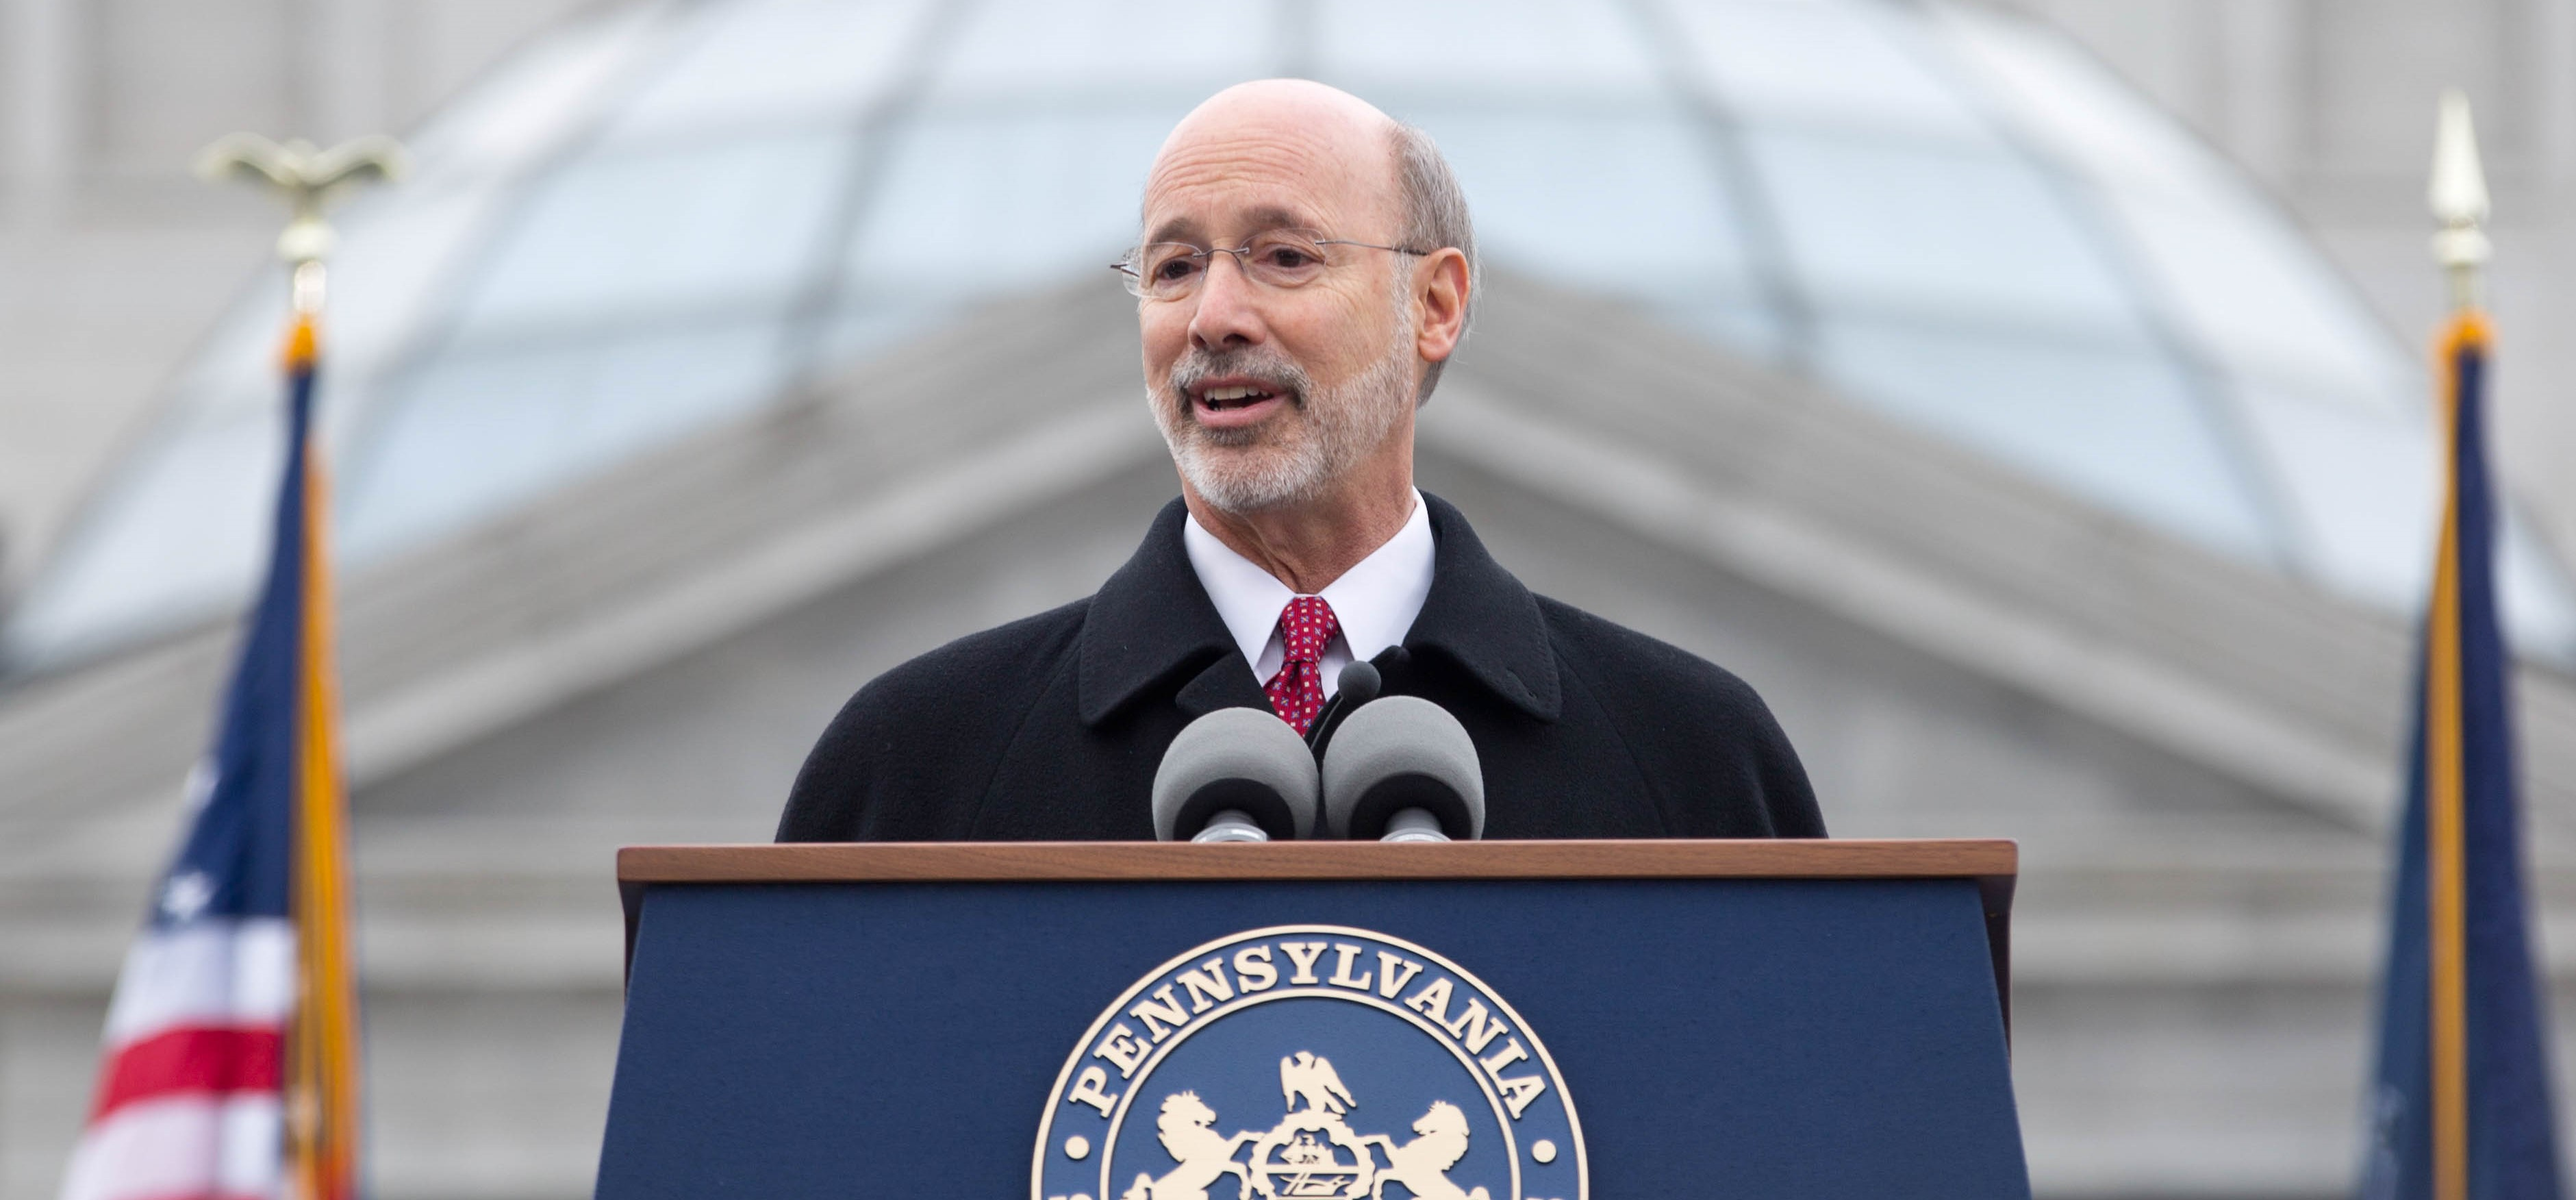 Pennsylvania governor to veto bill expanding funding to private schools